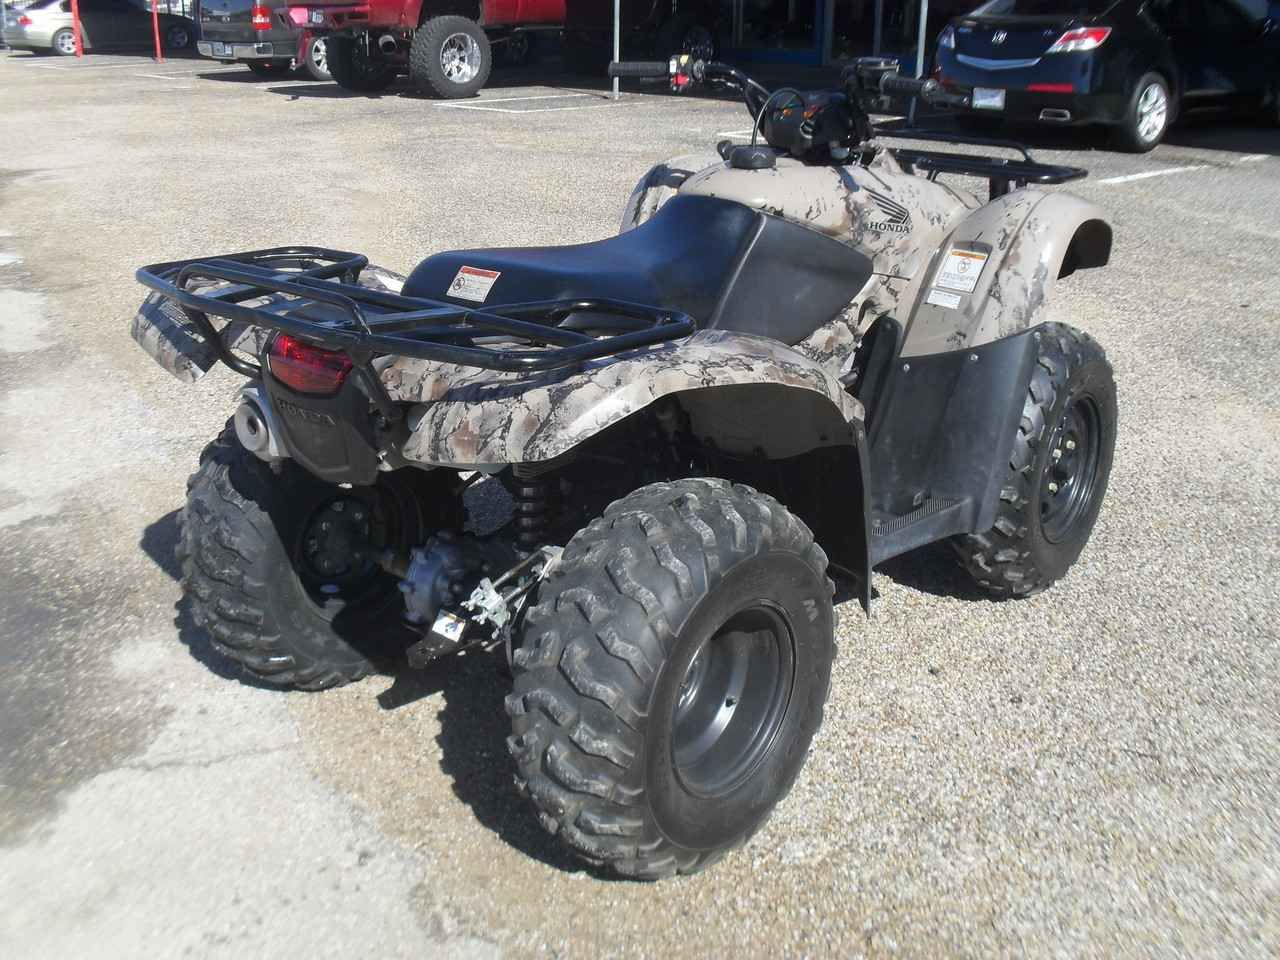 Used 2013 Honda FOURTRAX RANCHER 420 4X4 ATVs For Sale In Texas. 2013 Honda  Rancher